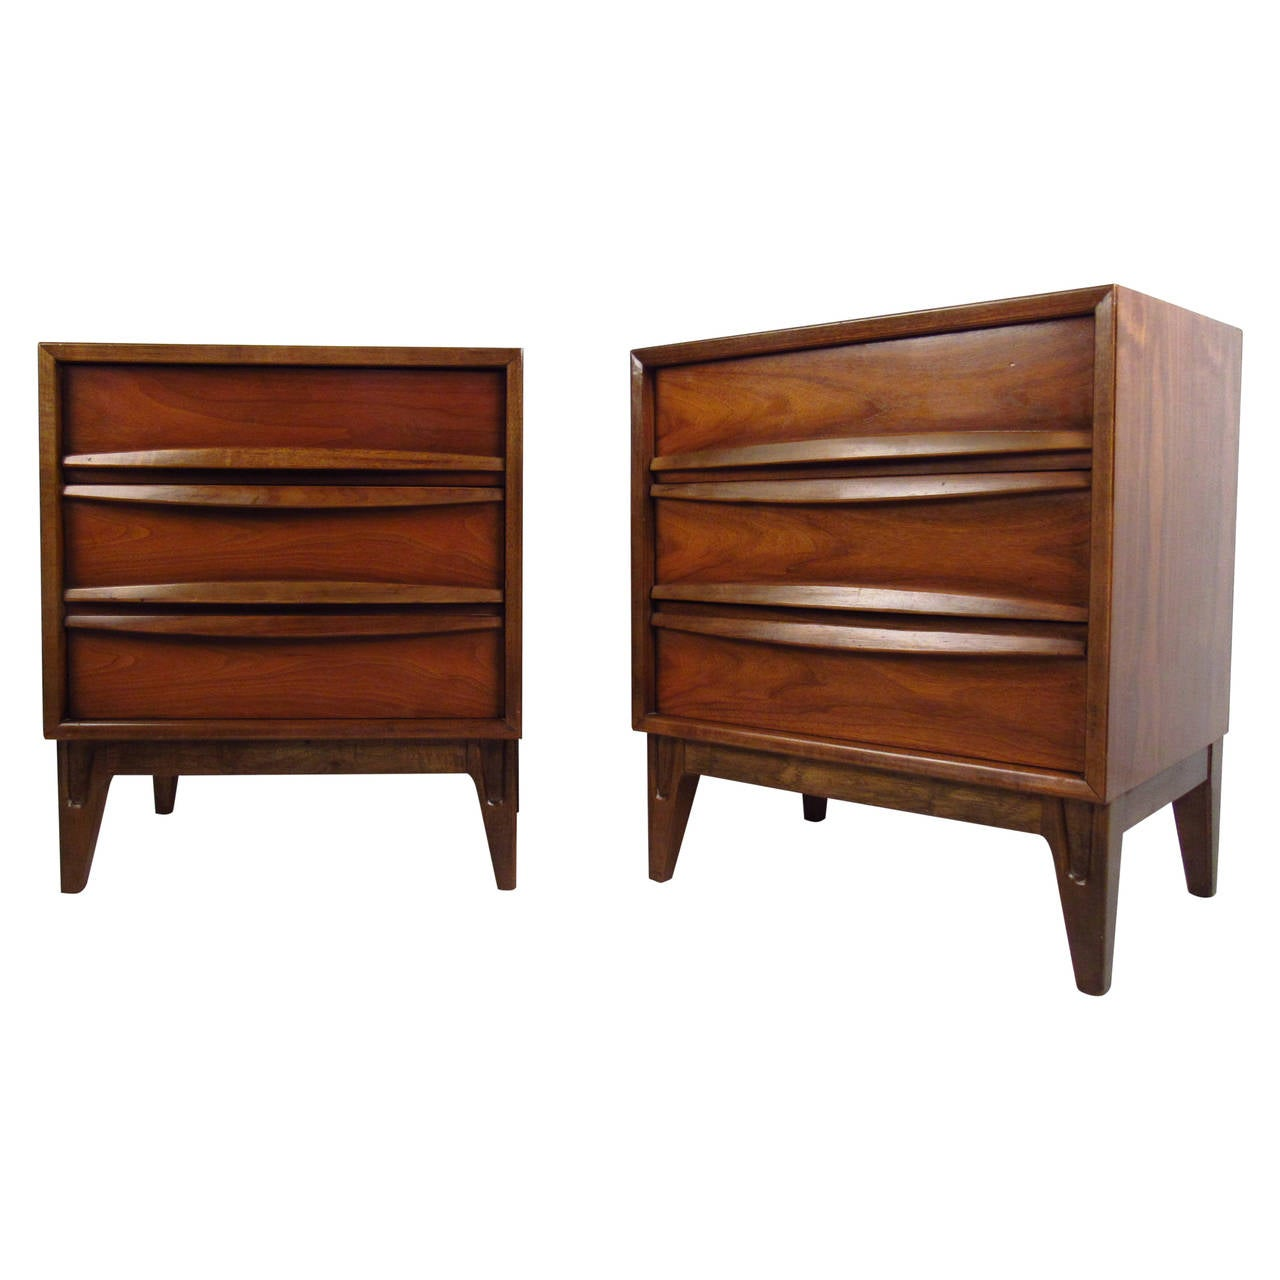 Exciting Pair Midcentury Cane Front Nightstands Sale At Mid Century Nightstand Etsy Mid Century Nightstand Curved Front Nightstands Pair houzz-03 Mid Century Nightstand